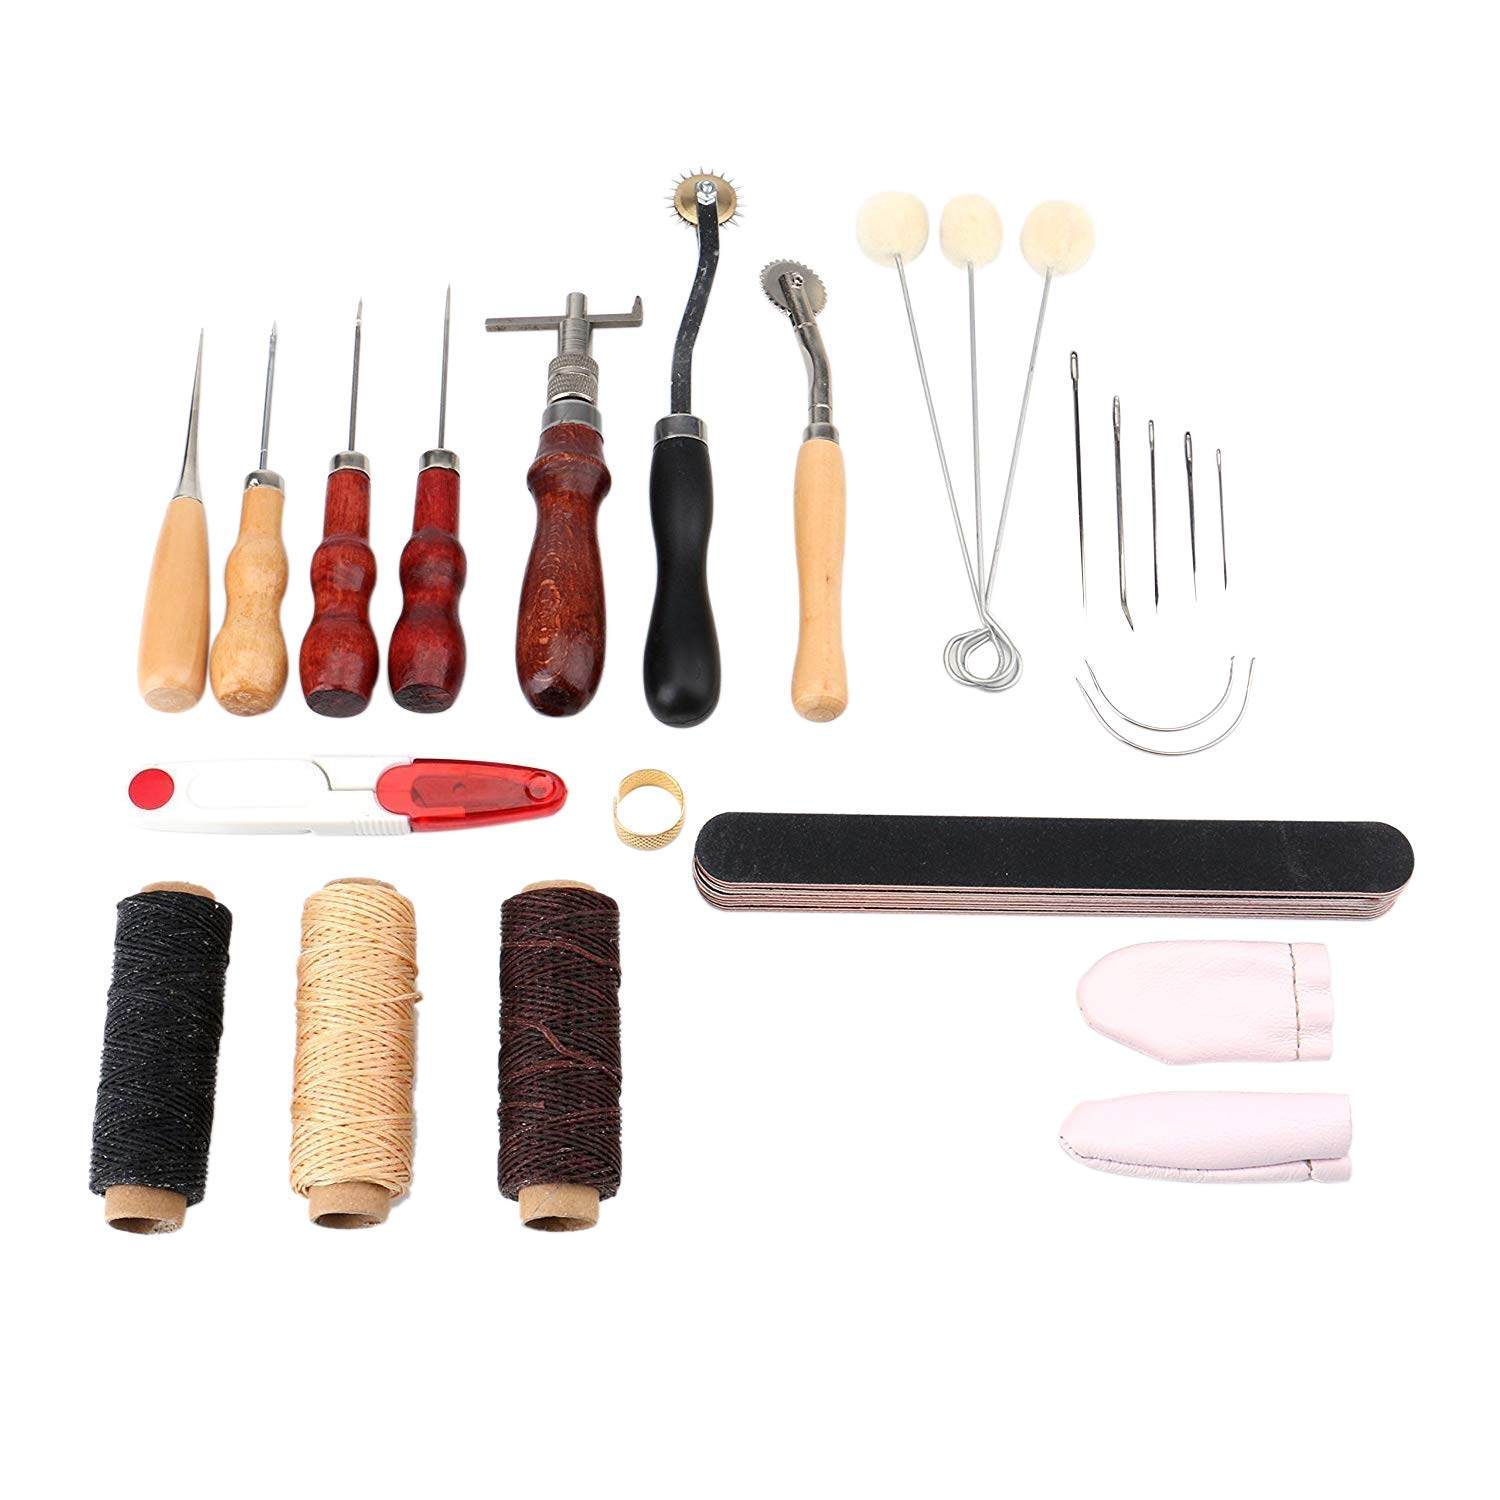 Tebery 29 Pieces Leather Craft Tool Professional Leather Sewing Kit DIY Hand Stitching Tools